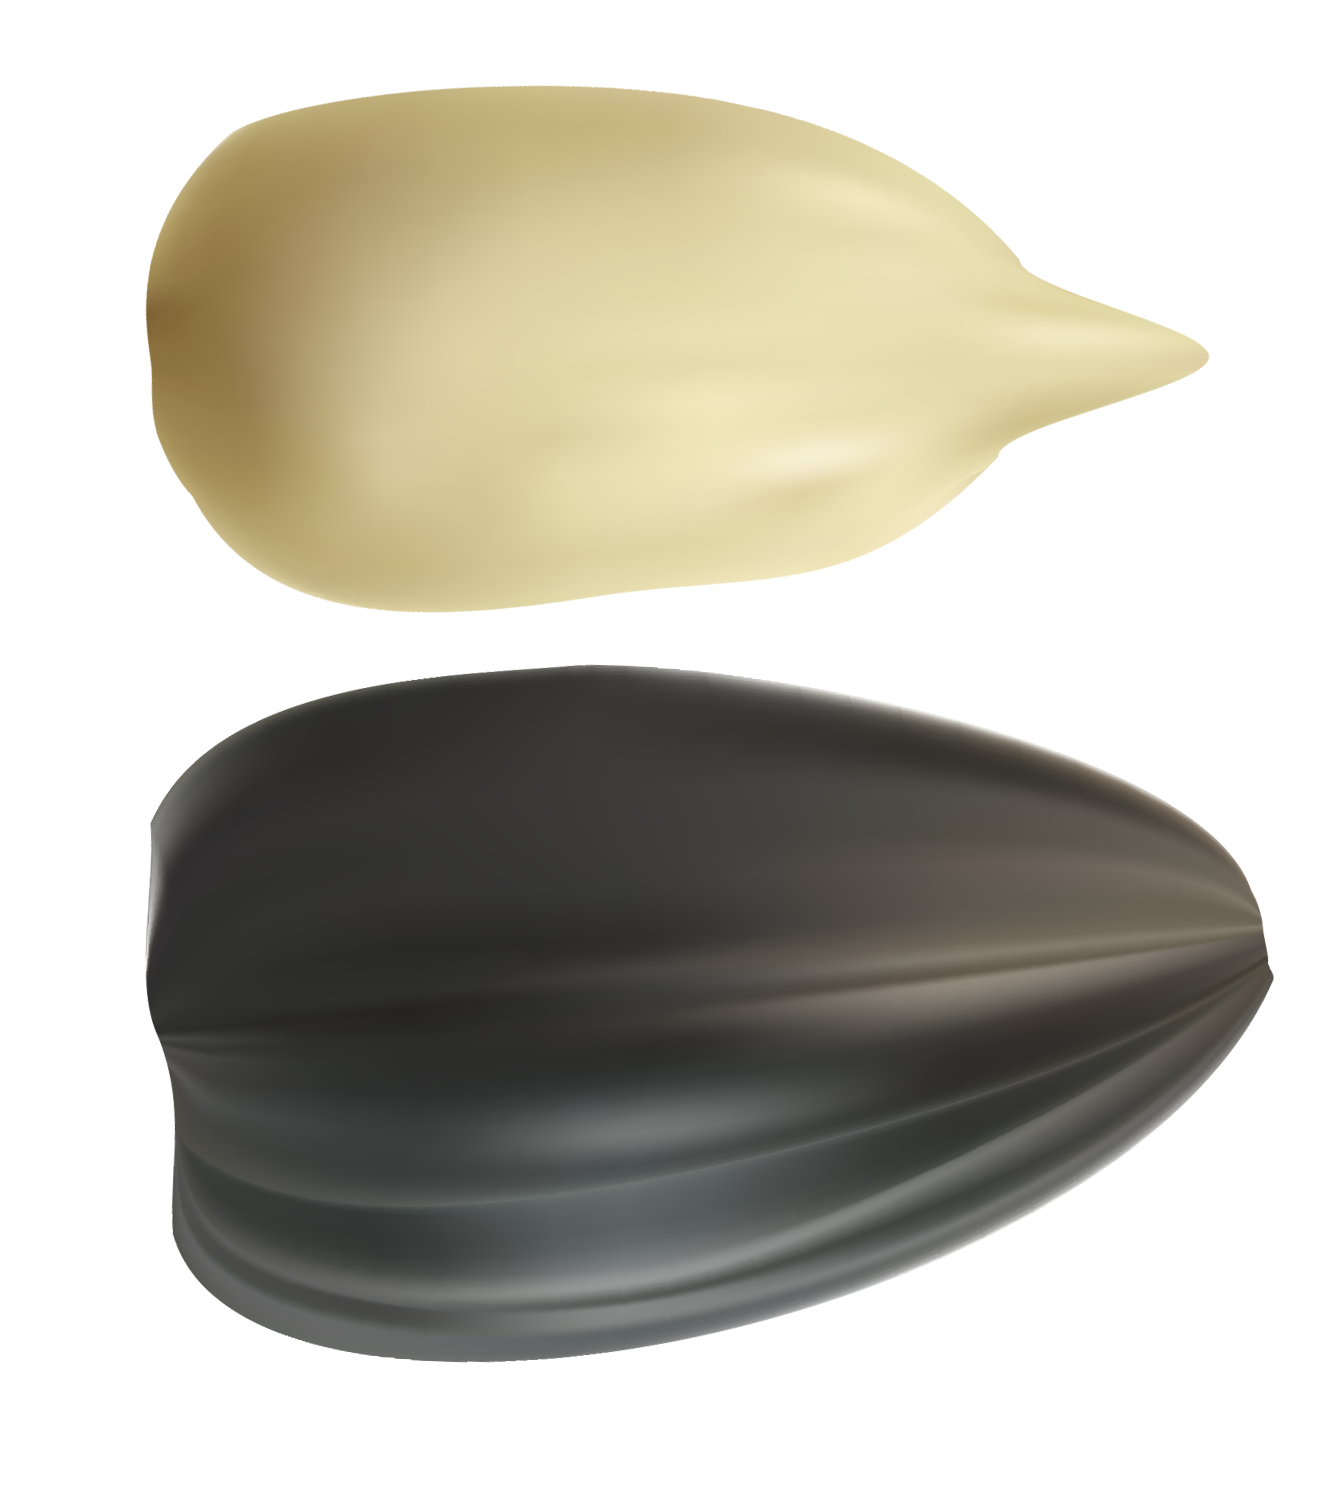 Sunflower seed png. Seeds clipart best web